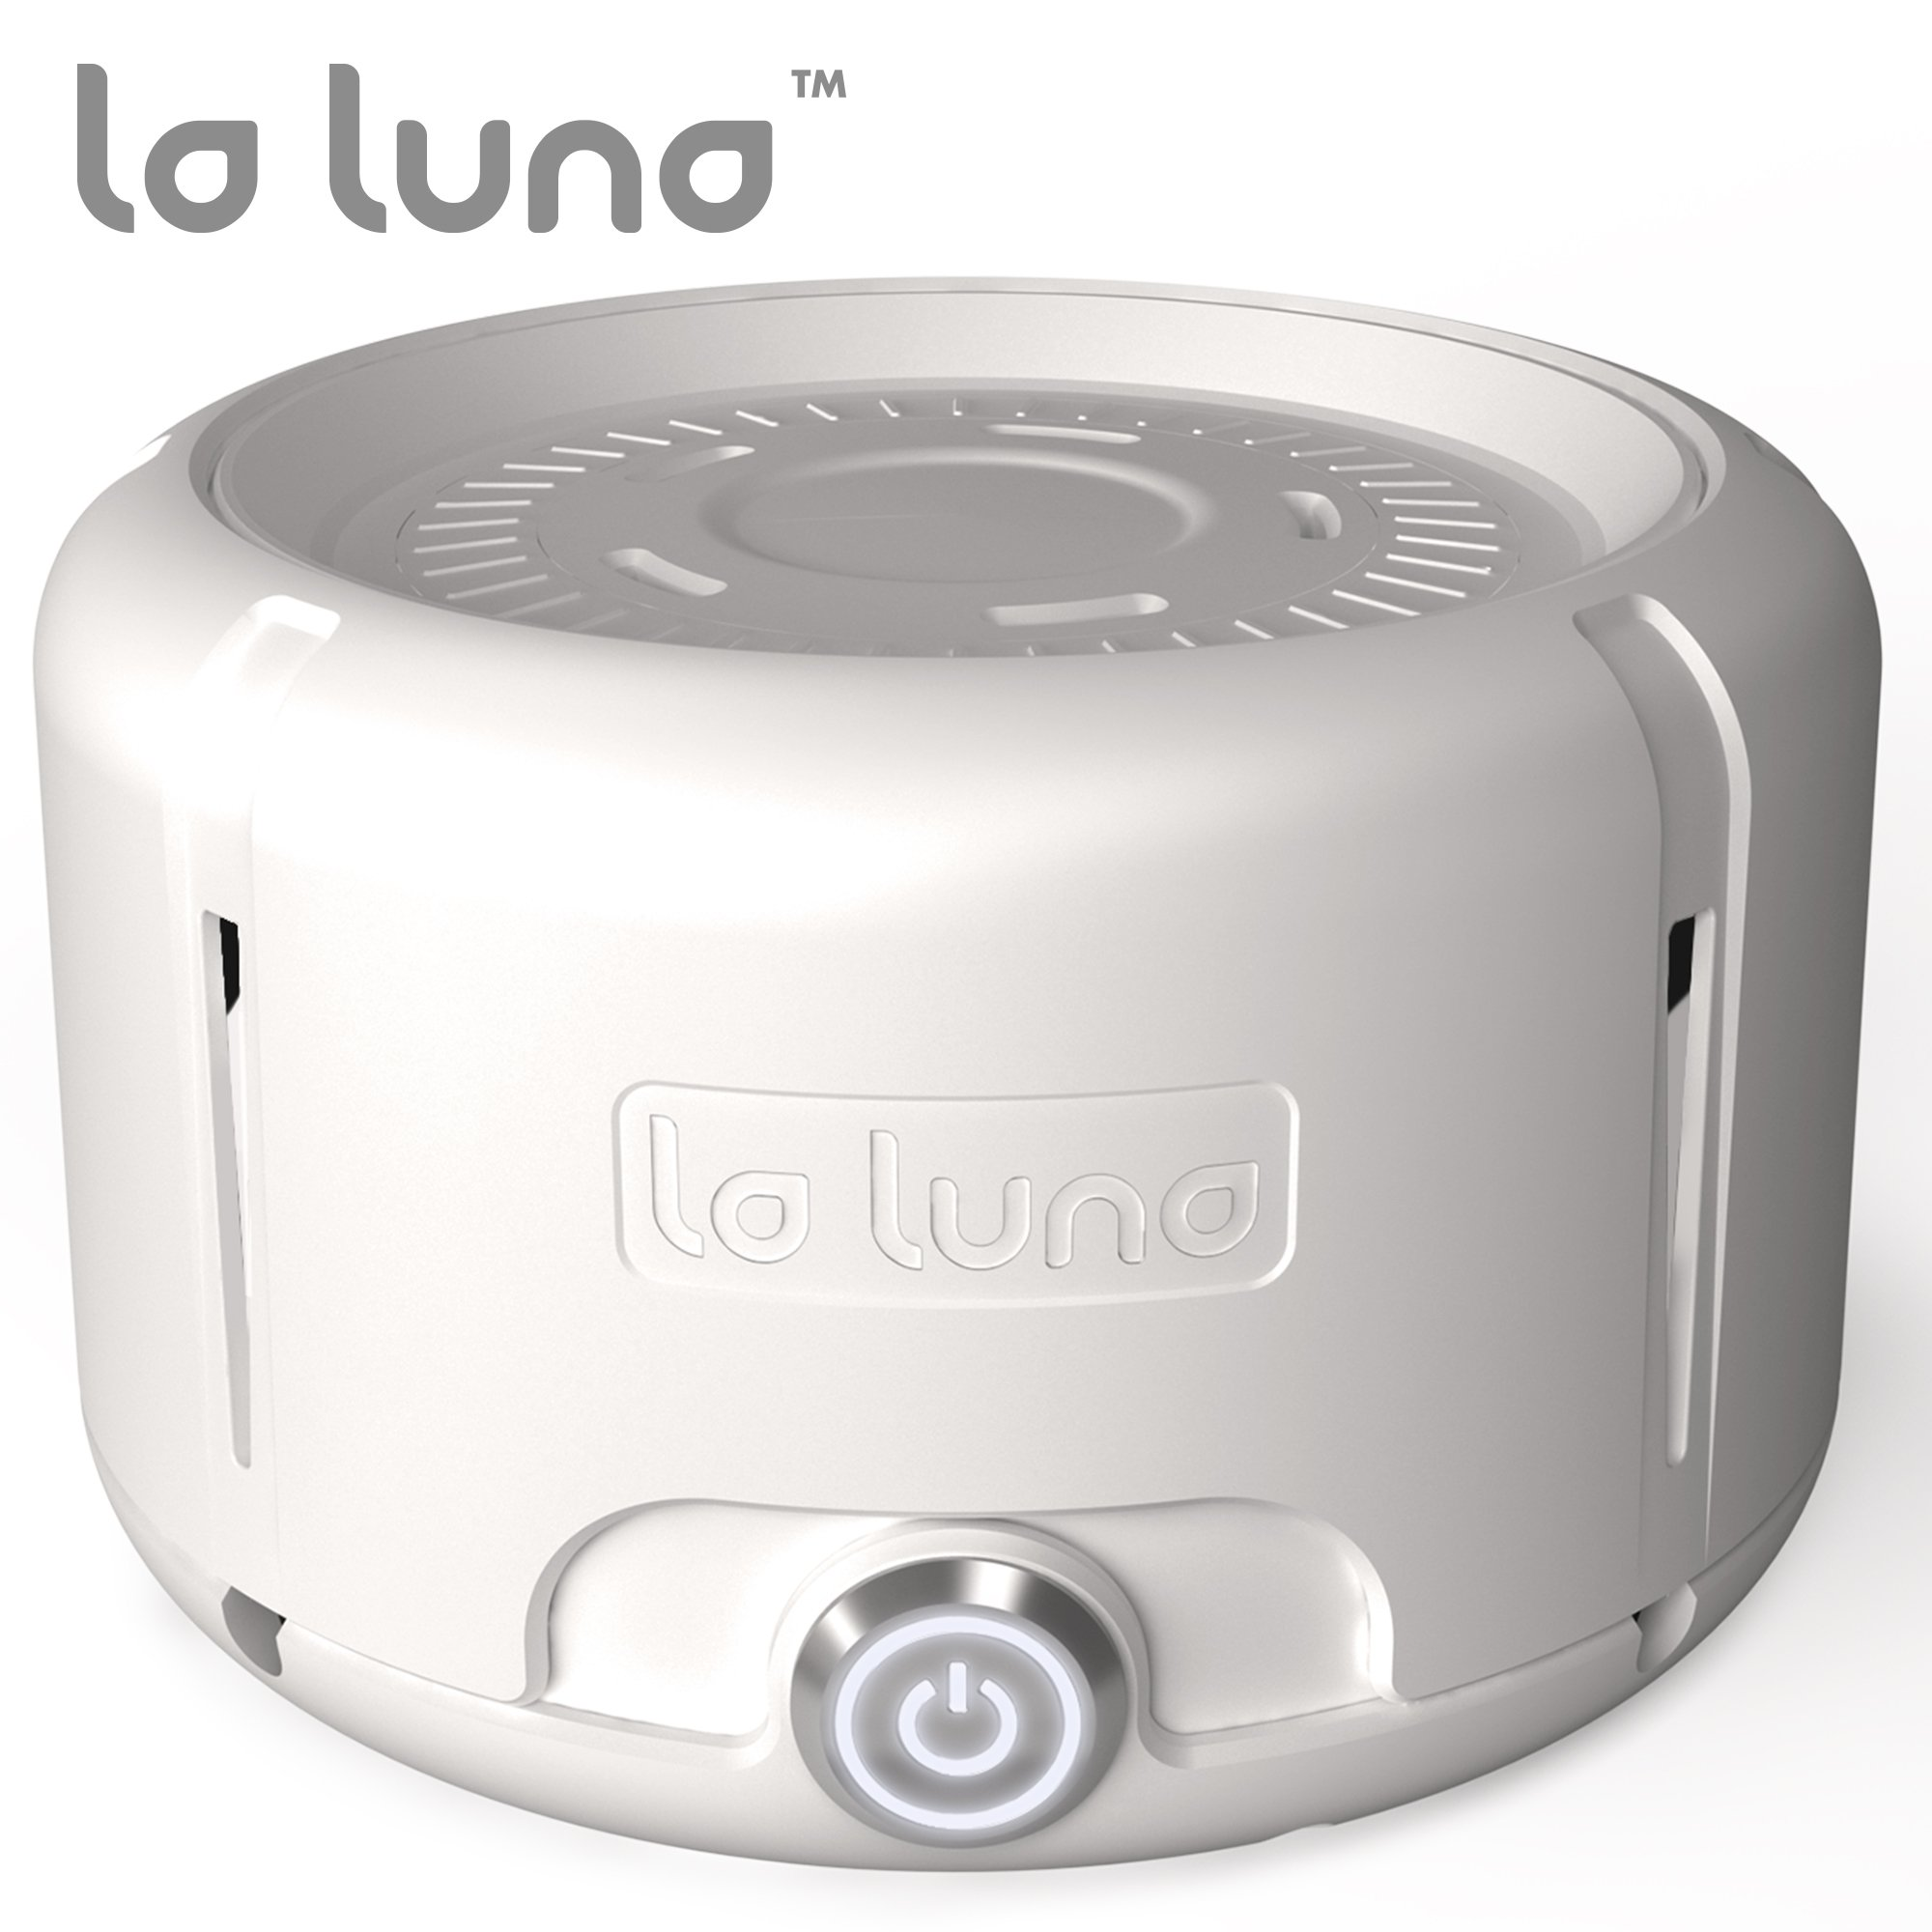 La Luna White Noise Machine – Fan Sound Machine Generator of White Noise for Sleep, Baby, Privacy, Etc. - Dual Speed & Volume Control - Natural Sound Sleep Machine and Soother